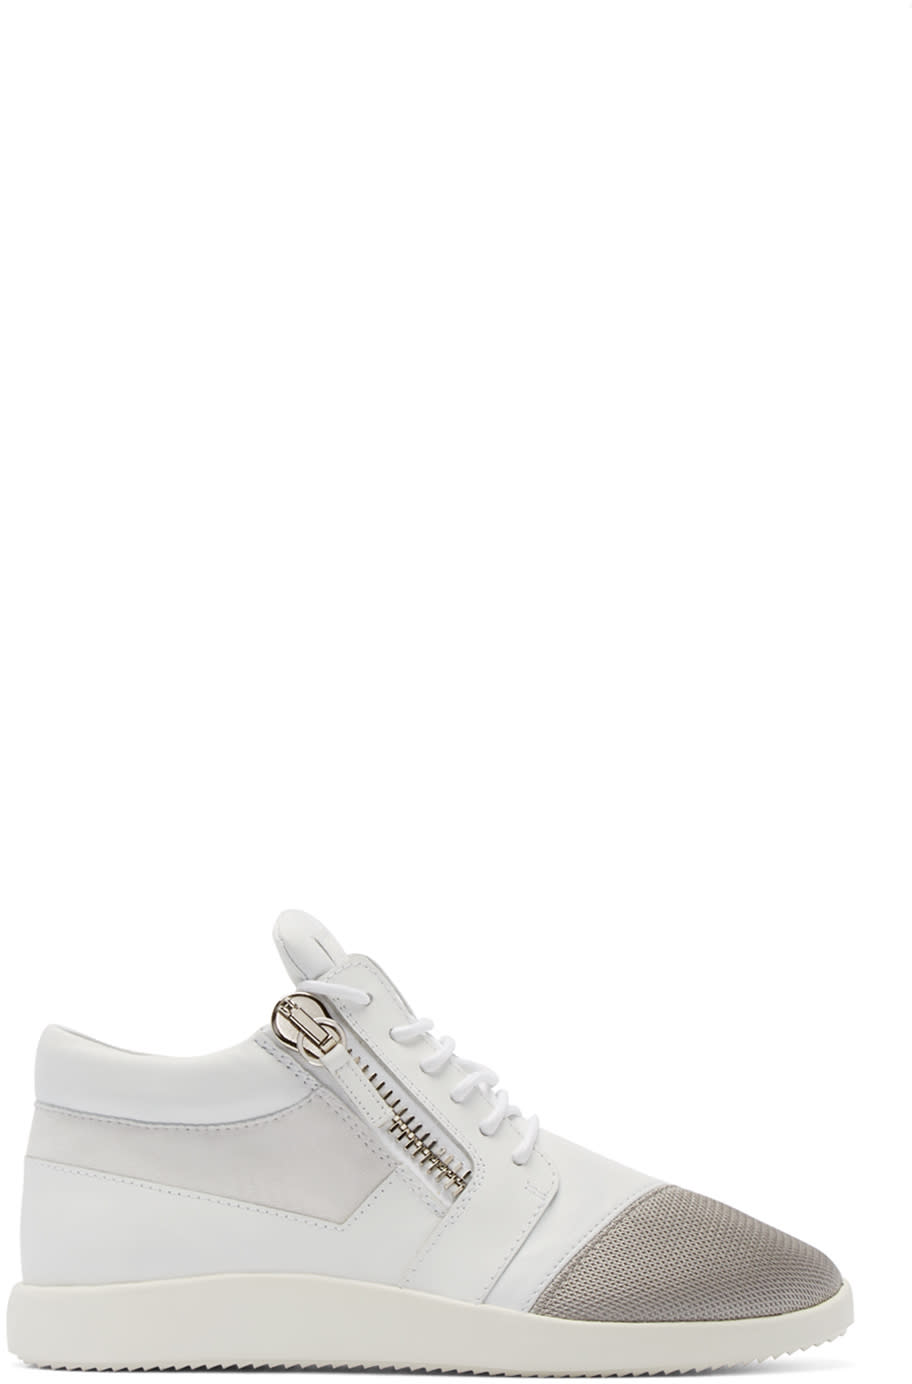 Giuseppe Zanotti White Leather and Mesh Megatron Sneakers